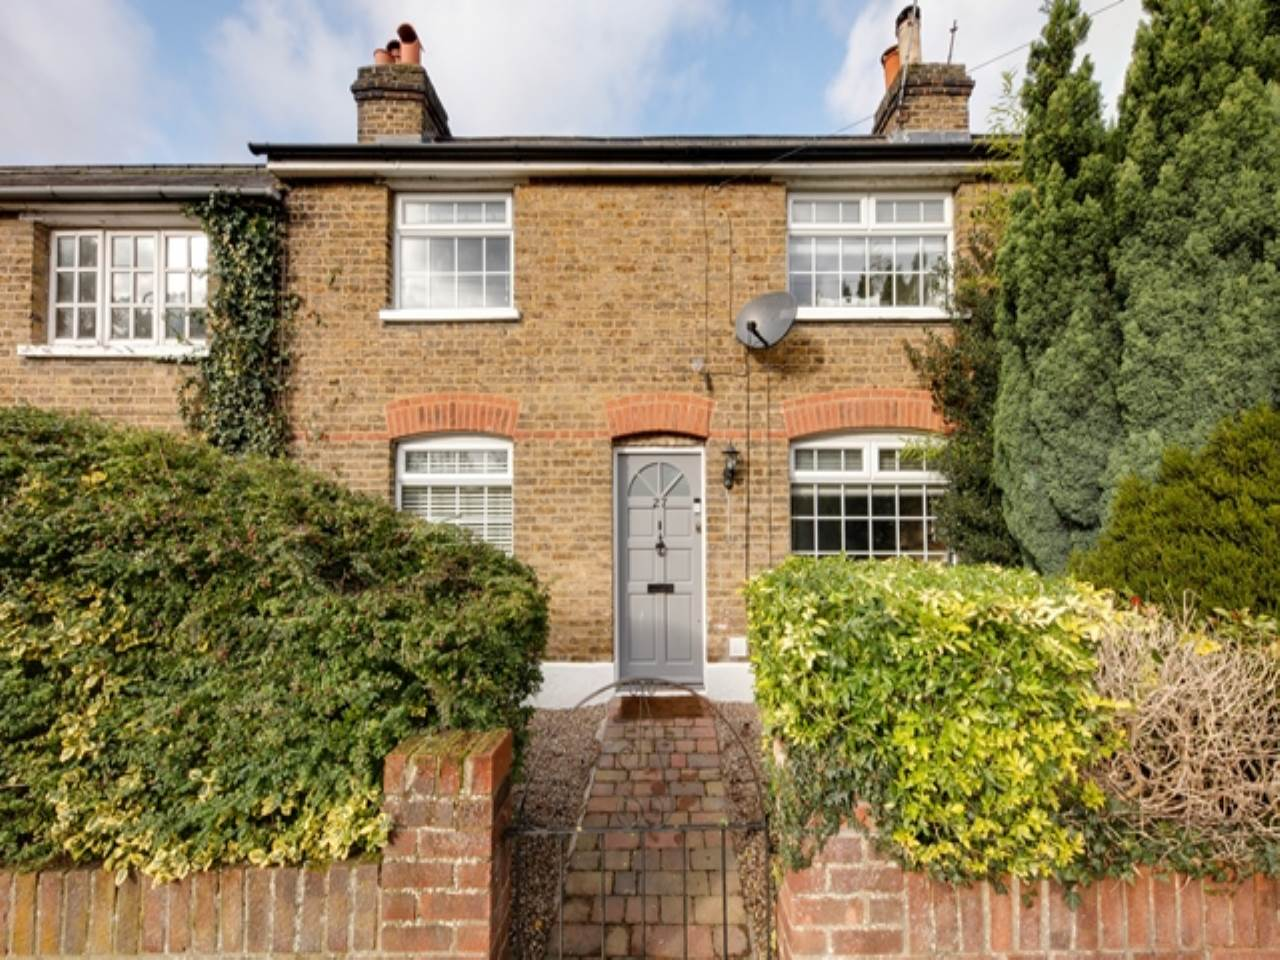 2 bed house for sale in Epping  - Property Image 1